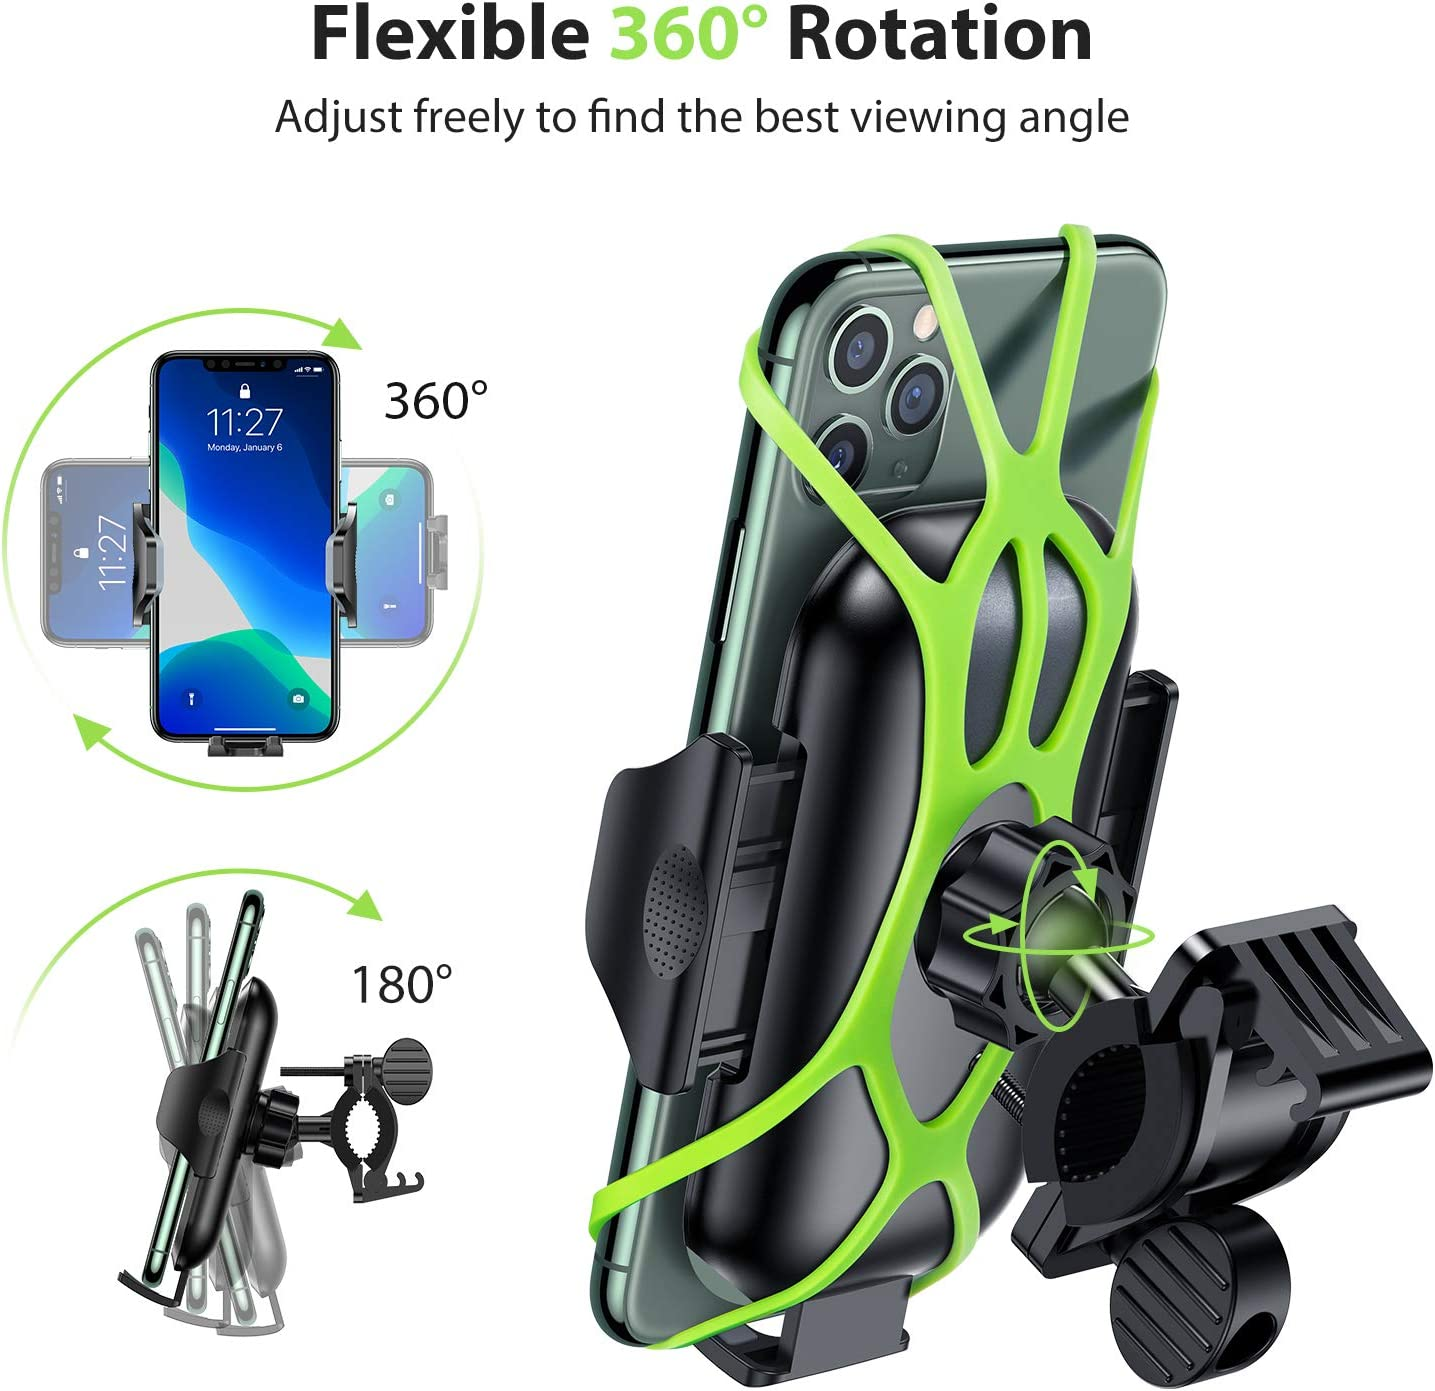 VICSEED Metal Bike Phone Mount Holder Motorcycle Phone Mount Universal Handlebar Clamp for Bike Motorcycle ATV Bicycle Phone Mount Fit for iPhone SE 11 Pro Max XS Samsung S20 Note10 GPS All Phones